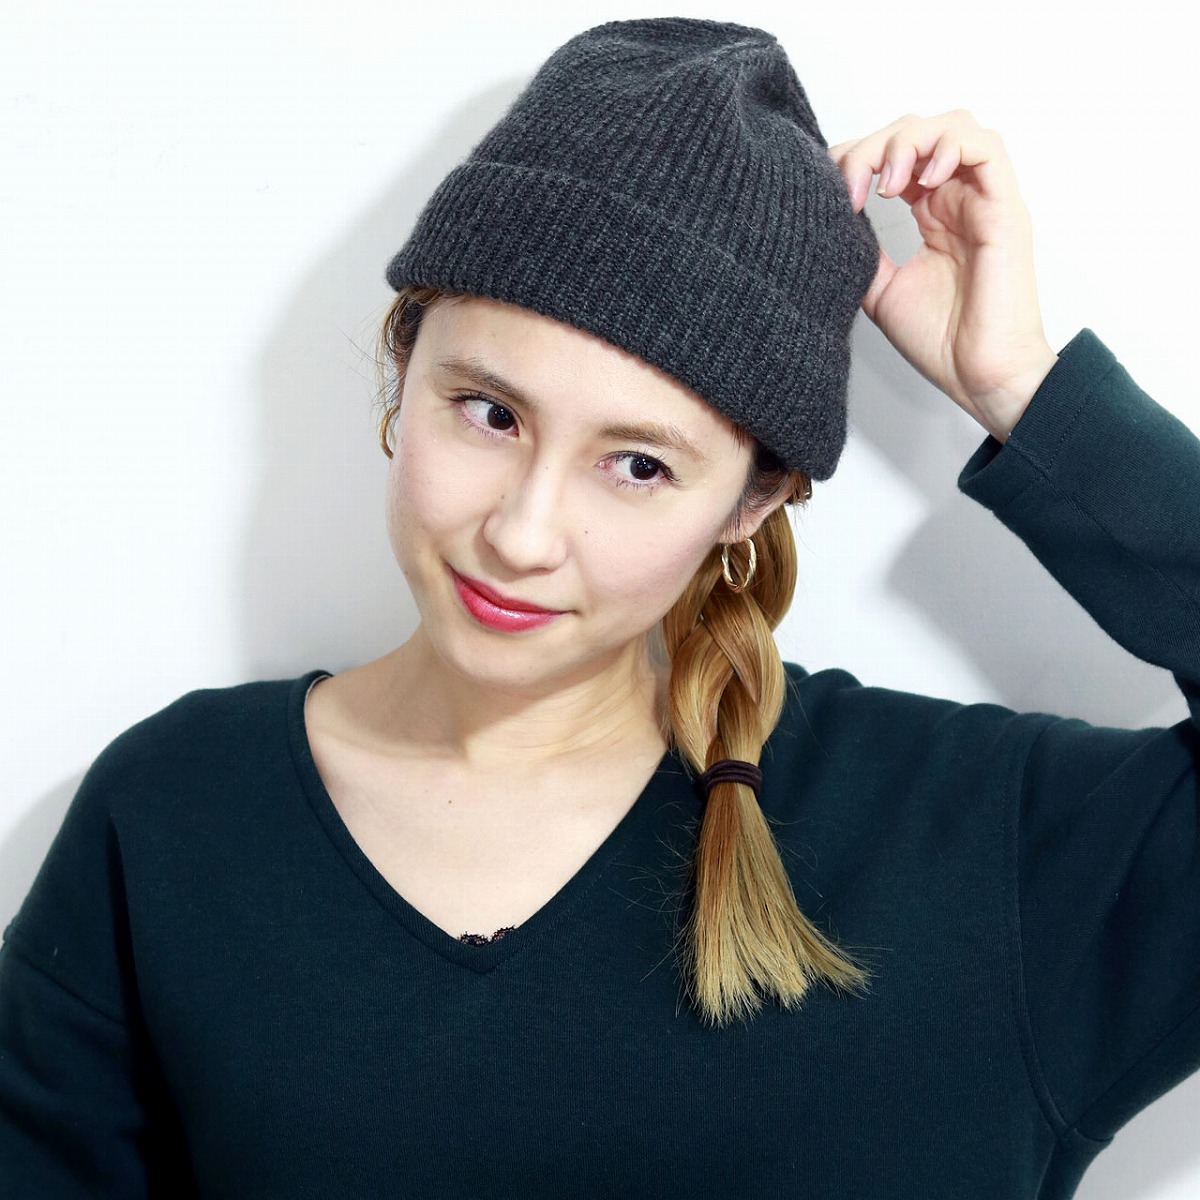 fe431b1d221 Cashmere hat men knit hat Lady s watch cap   gray (Christmas gift packing  lapping free of charge) made in ニットワッチ hat knit hat メンズラカル racal ...